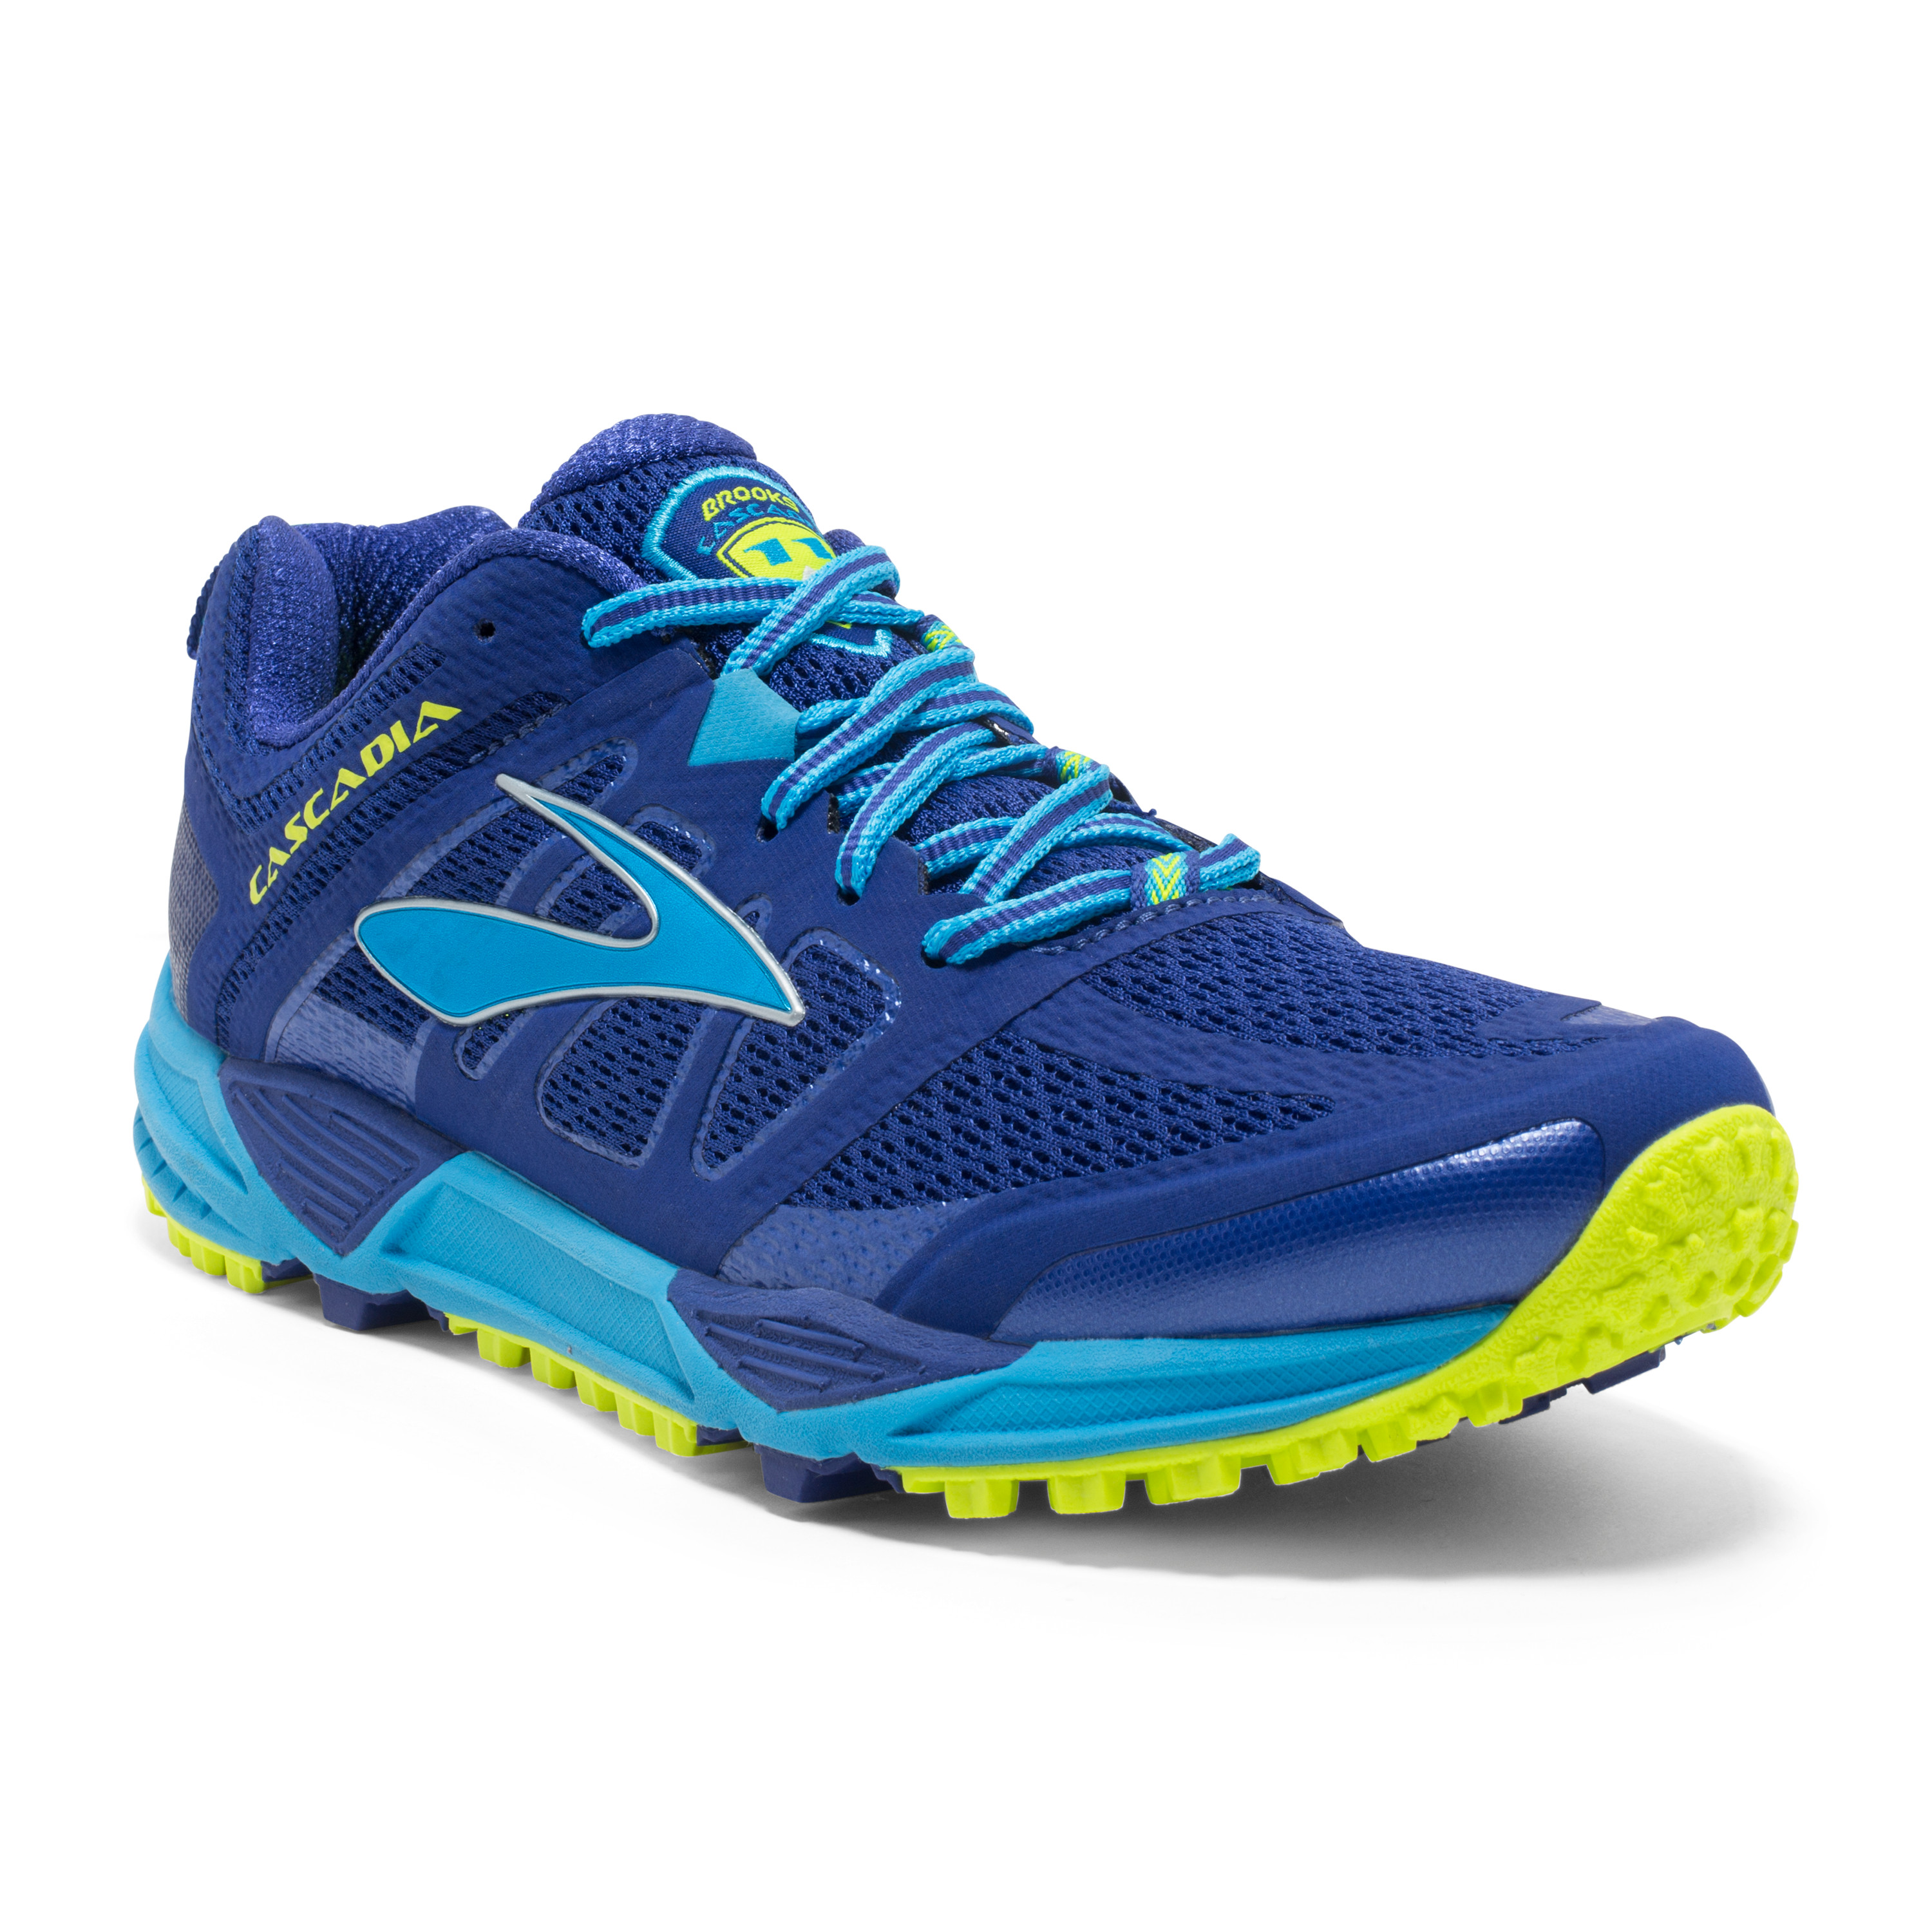 9ebf14997be WOMEN S CASCADIA 11 - Brooks Running Shoes SA